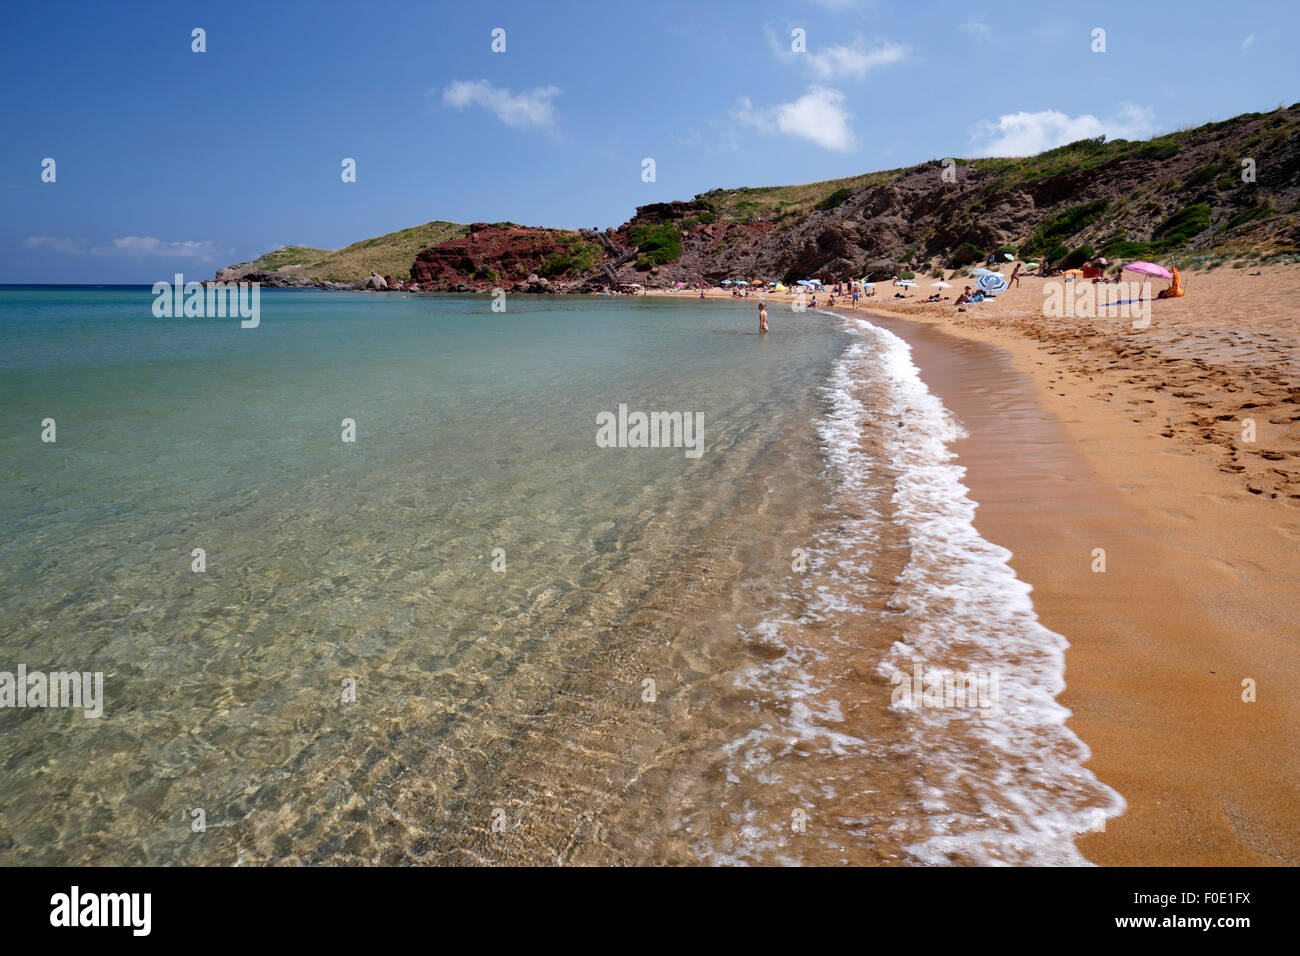 Platja de Cavalleria (Cavalleria beach), near Fornells, North Coast, Menorca, Balearic Islands, Spain, Europe - Stock Image